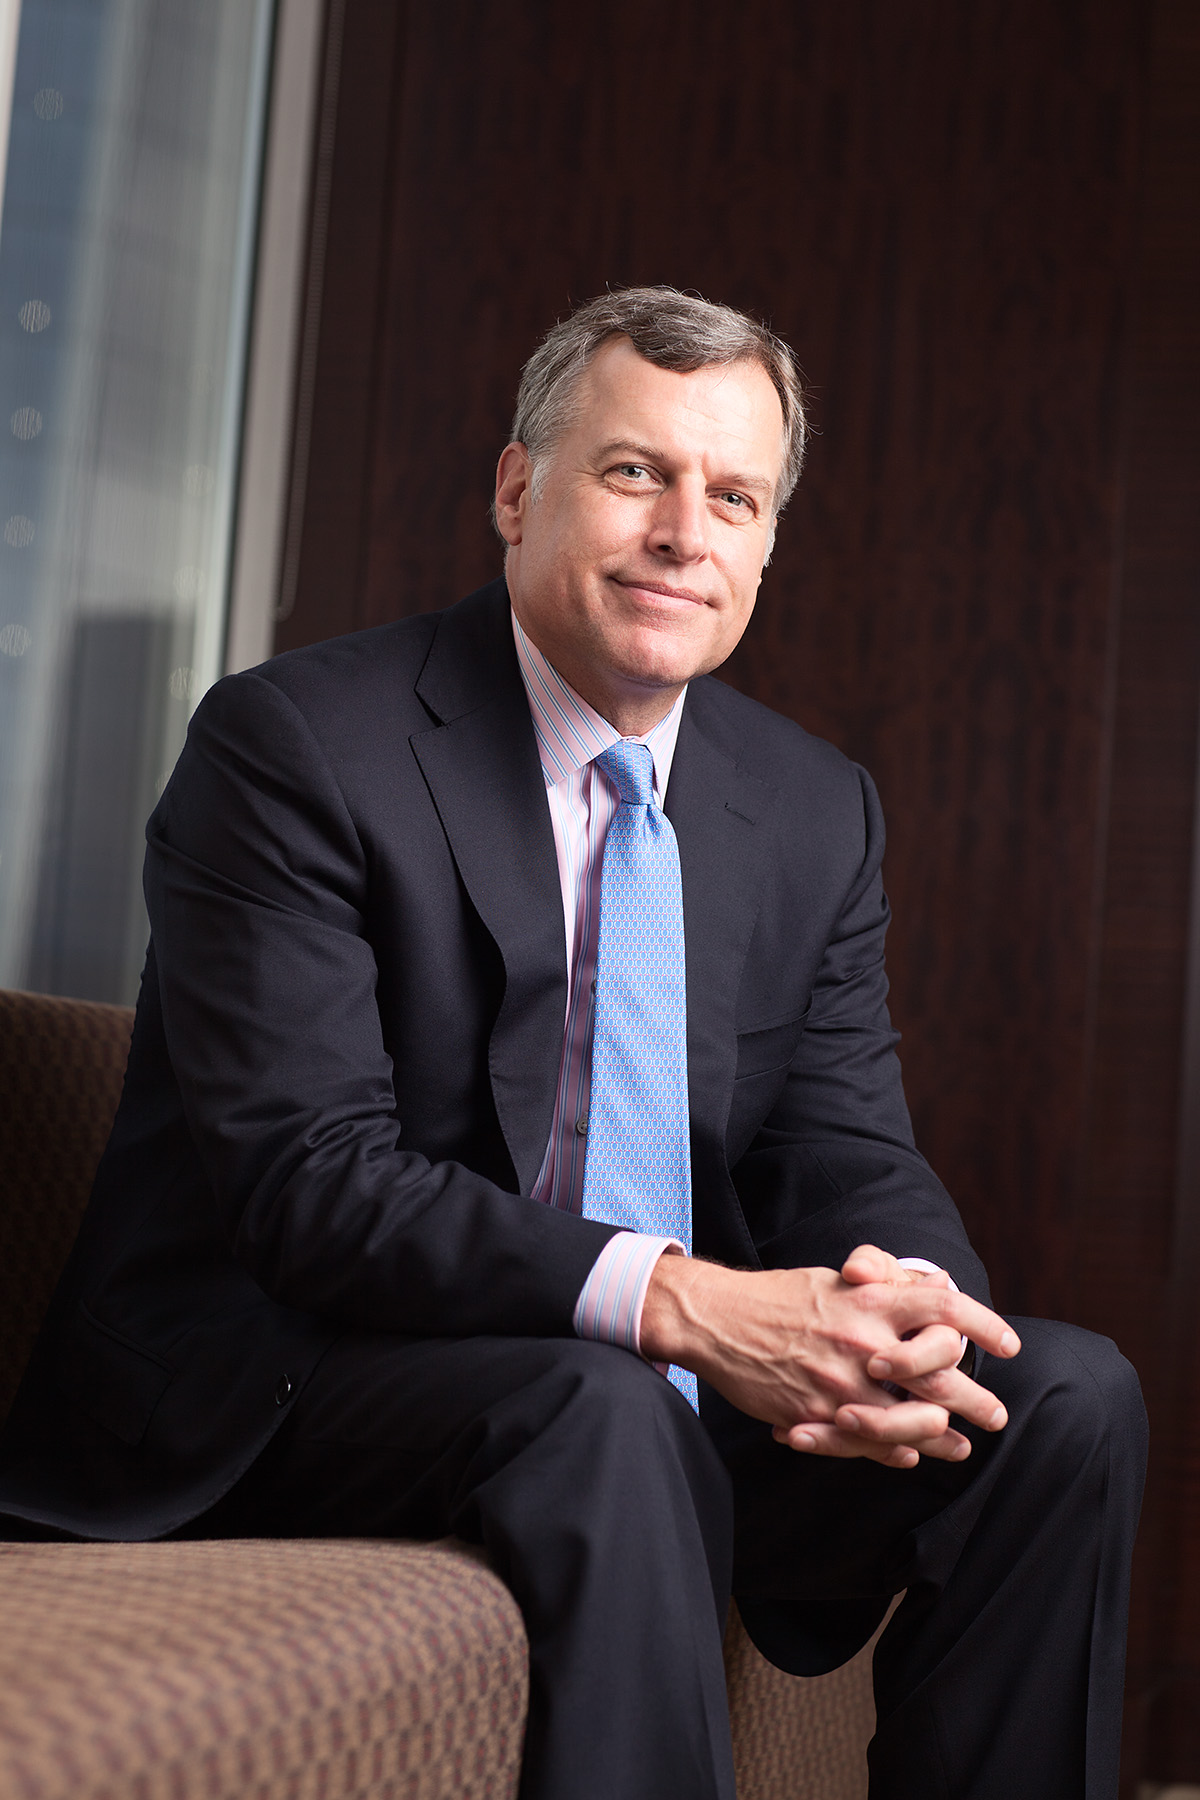 John Thiel, head of Merrill Lynch Wealth Management, photographed for On Wall Street magazine